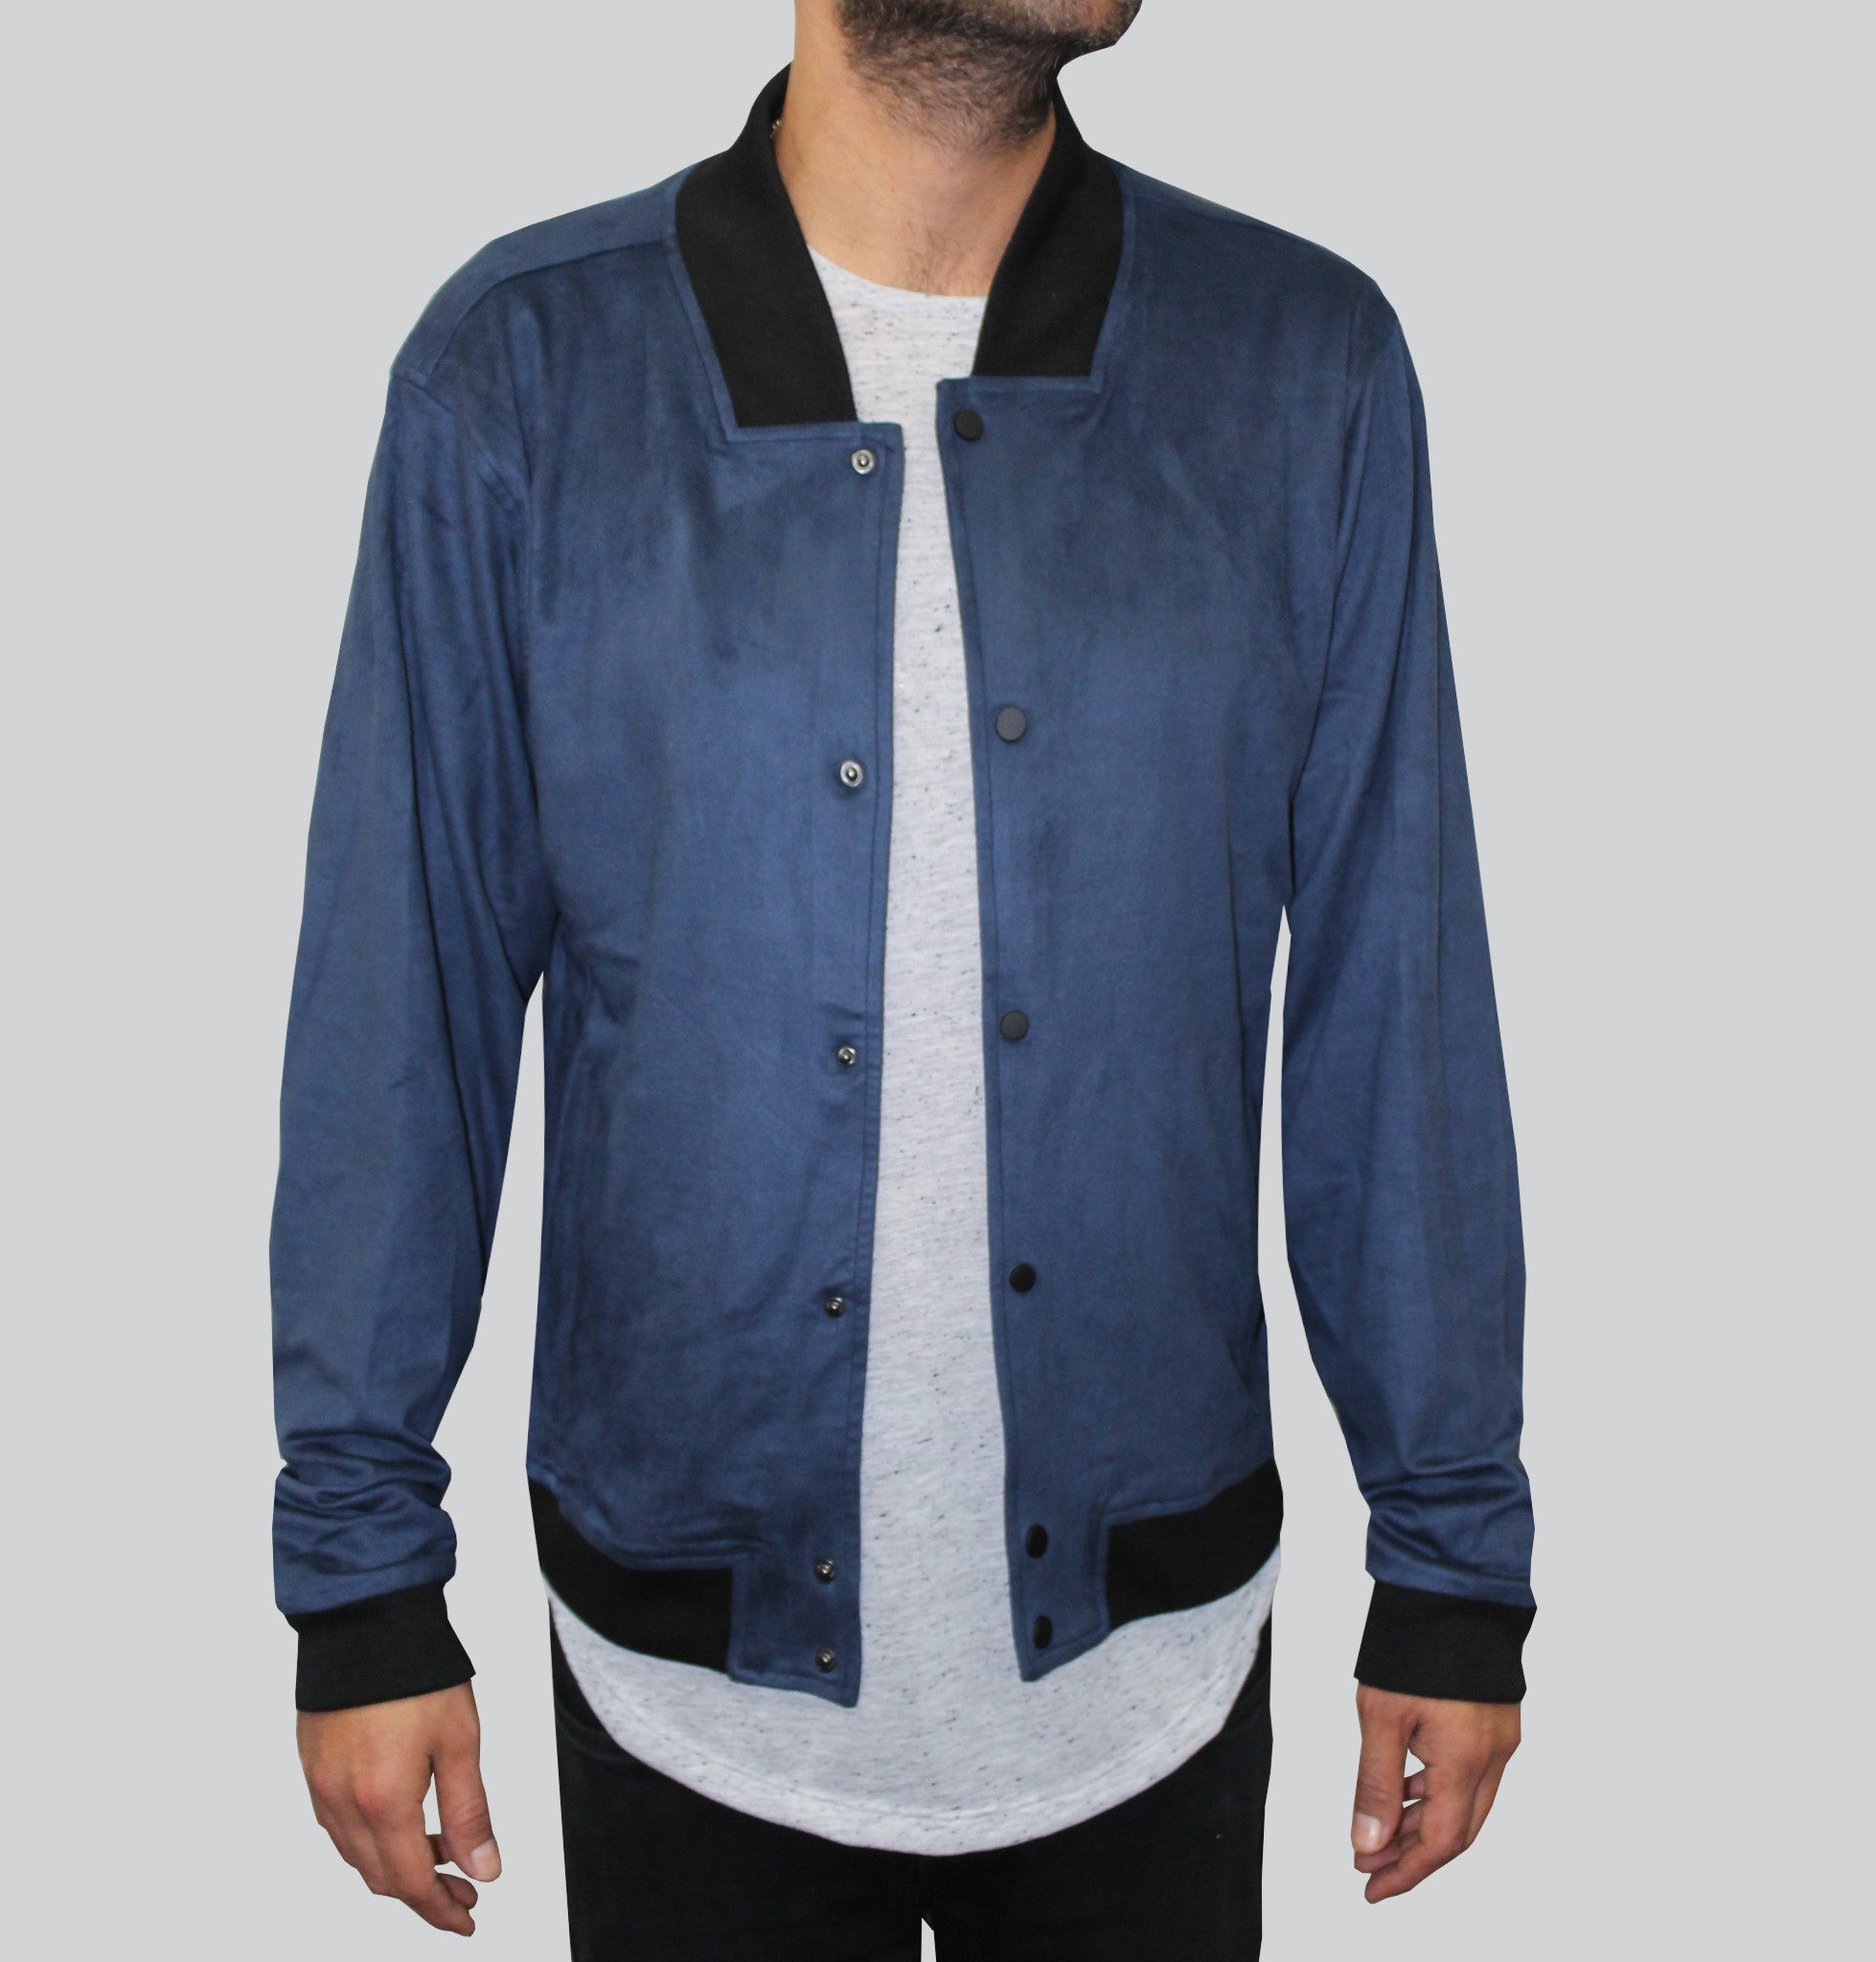 The Sway Ultra Suede Navy Jacket